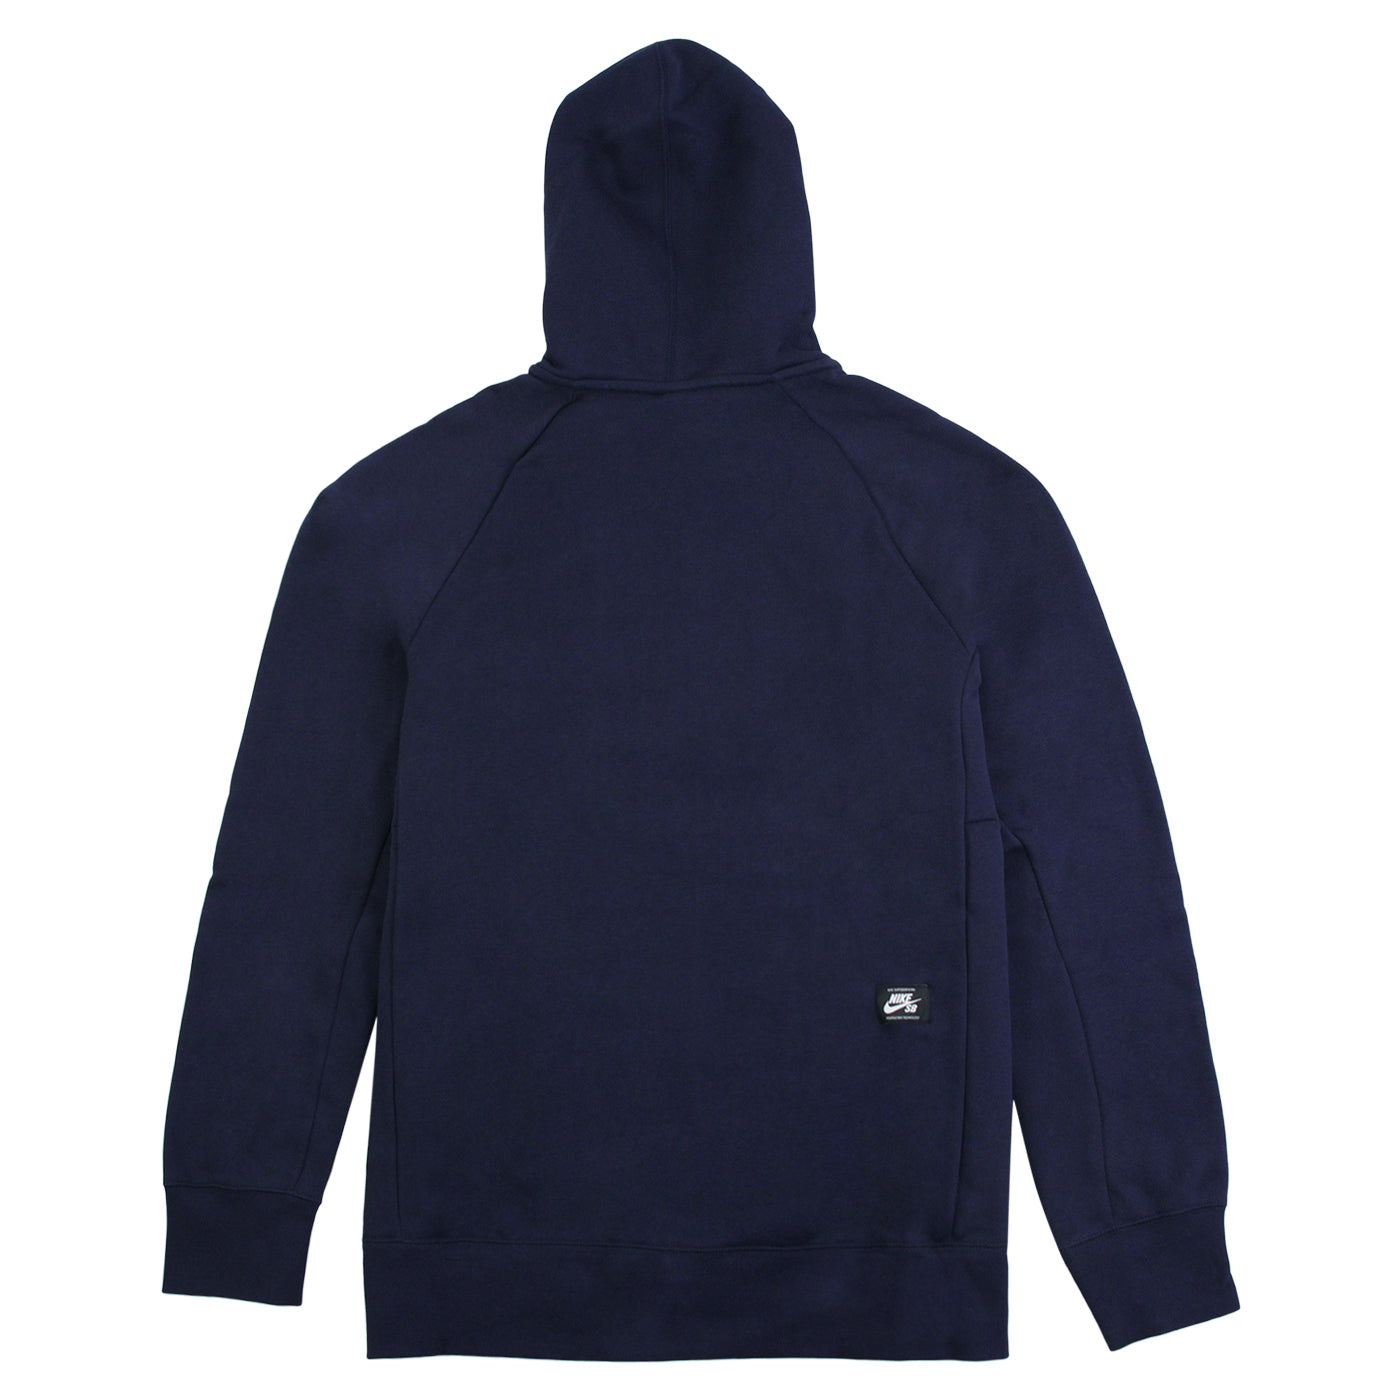 a0842d83e8dc SB Icon Grid Fill Pullover Hoodie in Navy   Metallic Gold by Nike SB ...